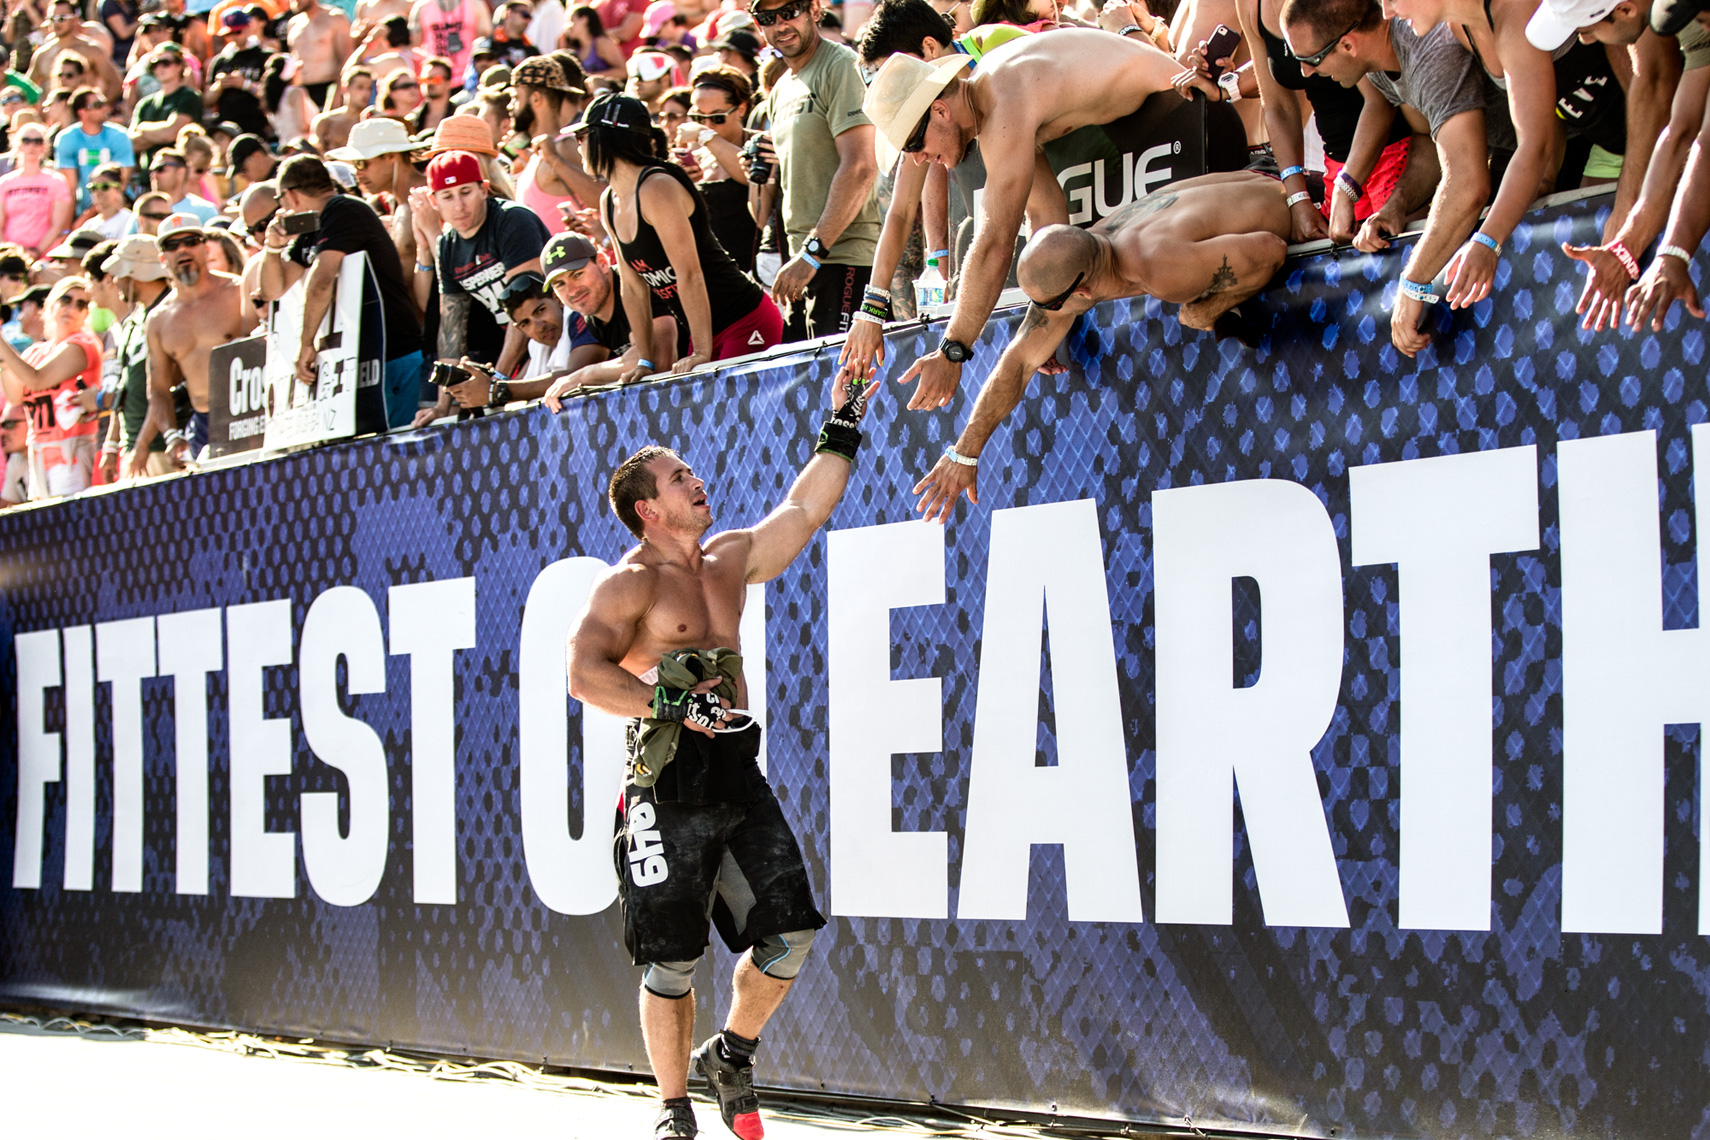 Los Angeles Sports Photography, Michael Brian, Dan Bailey engages fans, Reebok Crossfit Games, athlete, StubHub Center